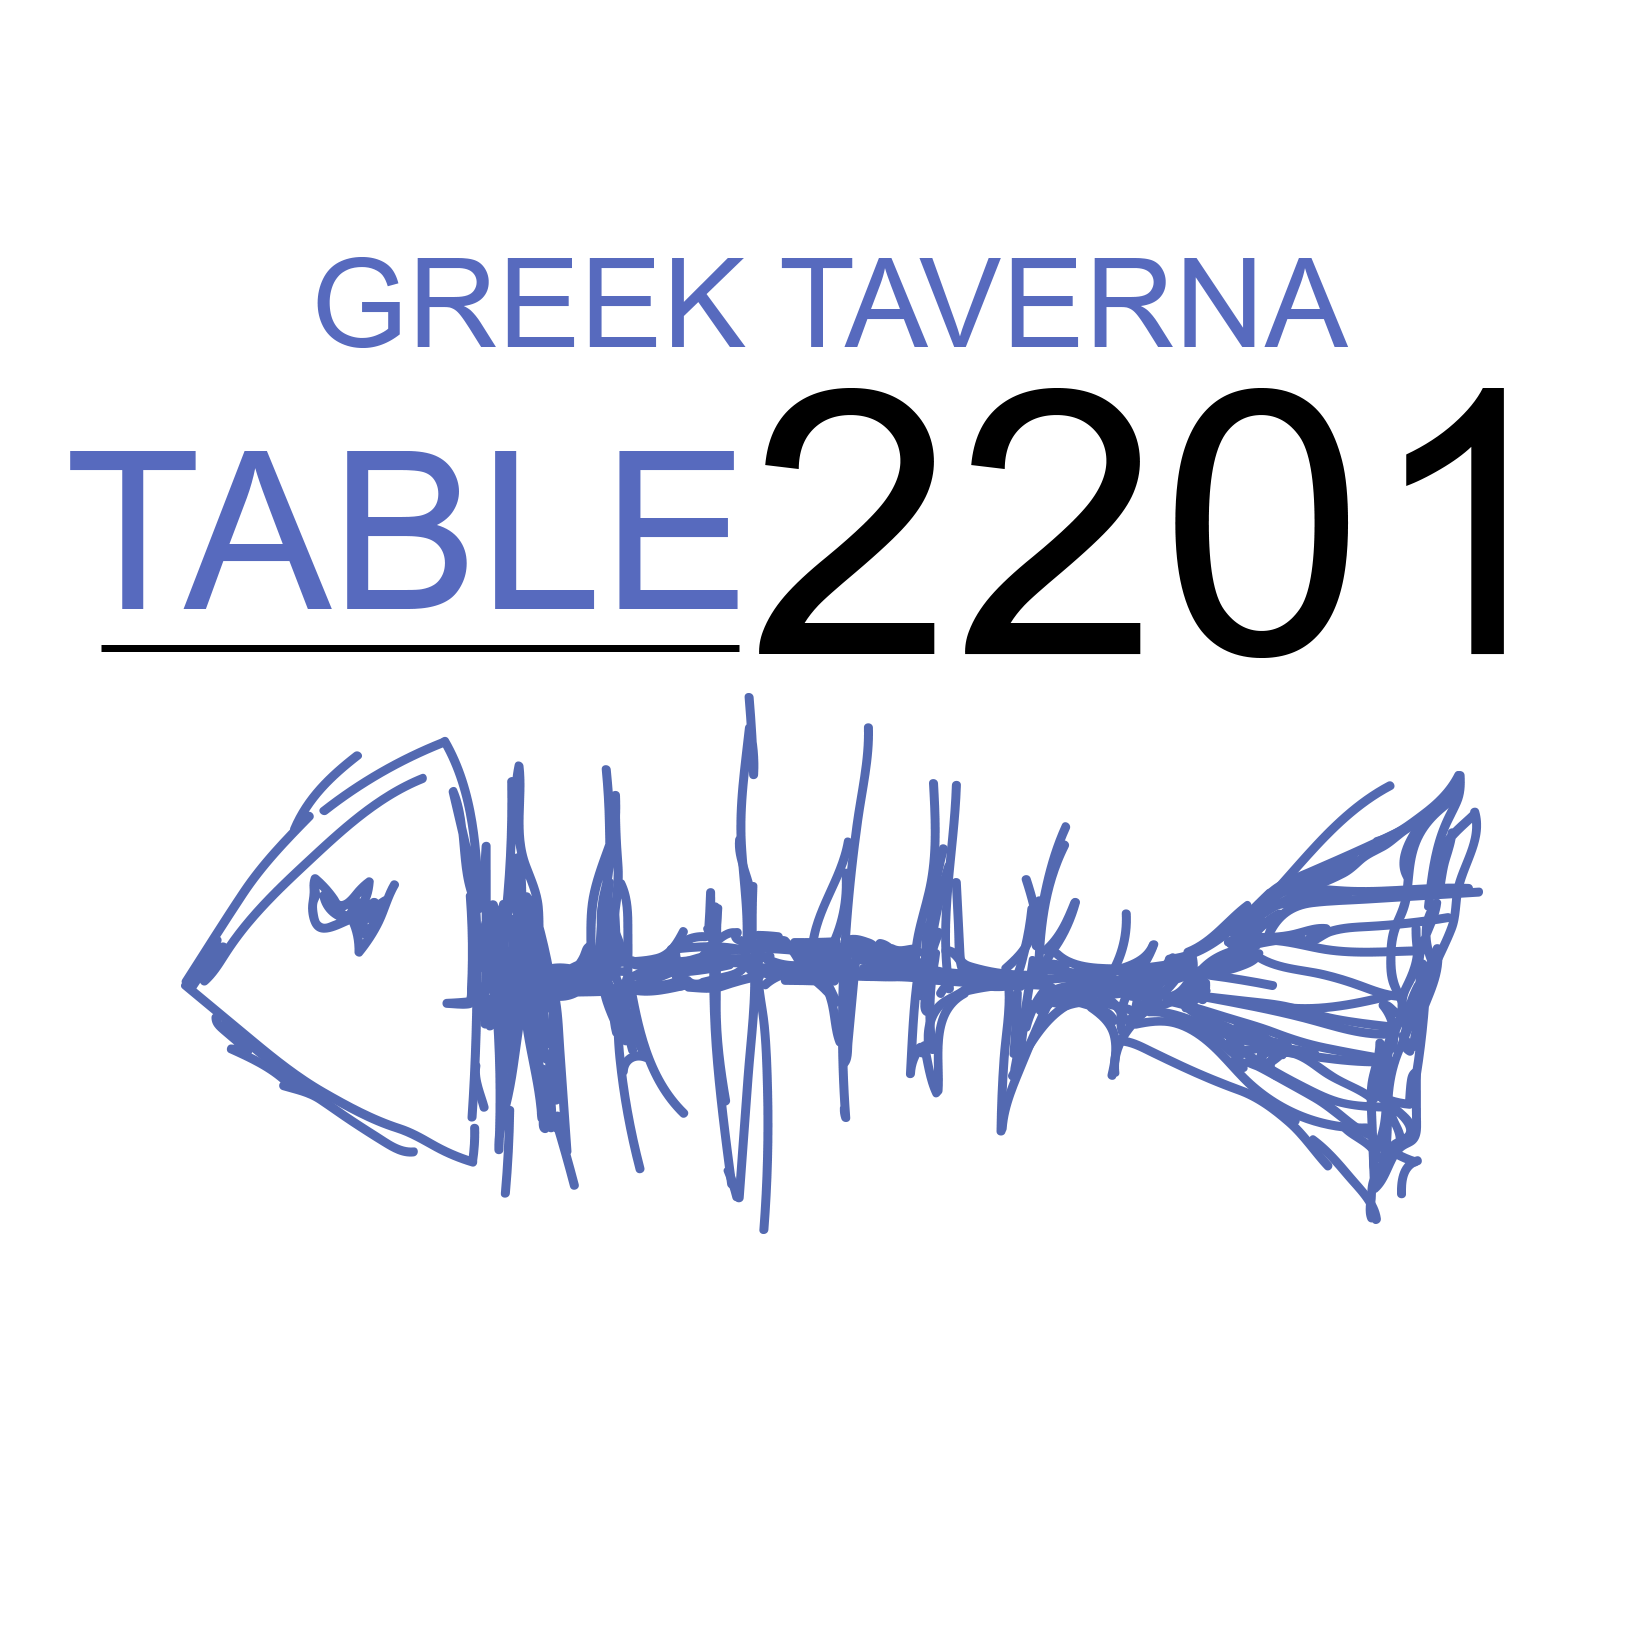 Greek Taverna Table 2201